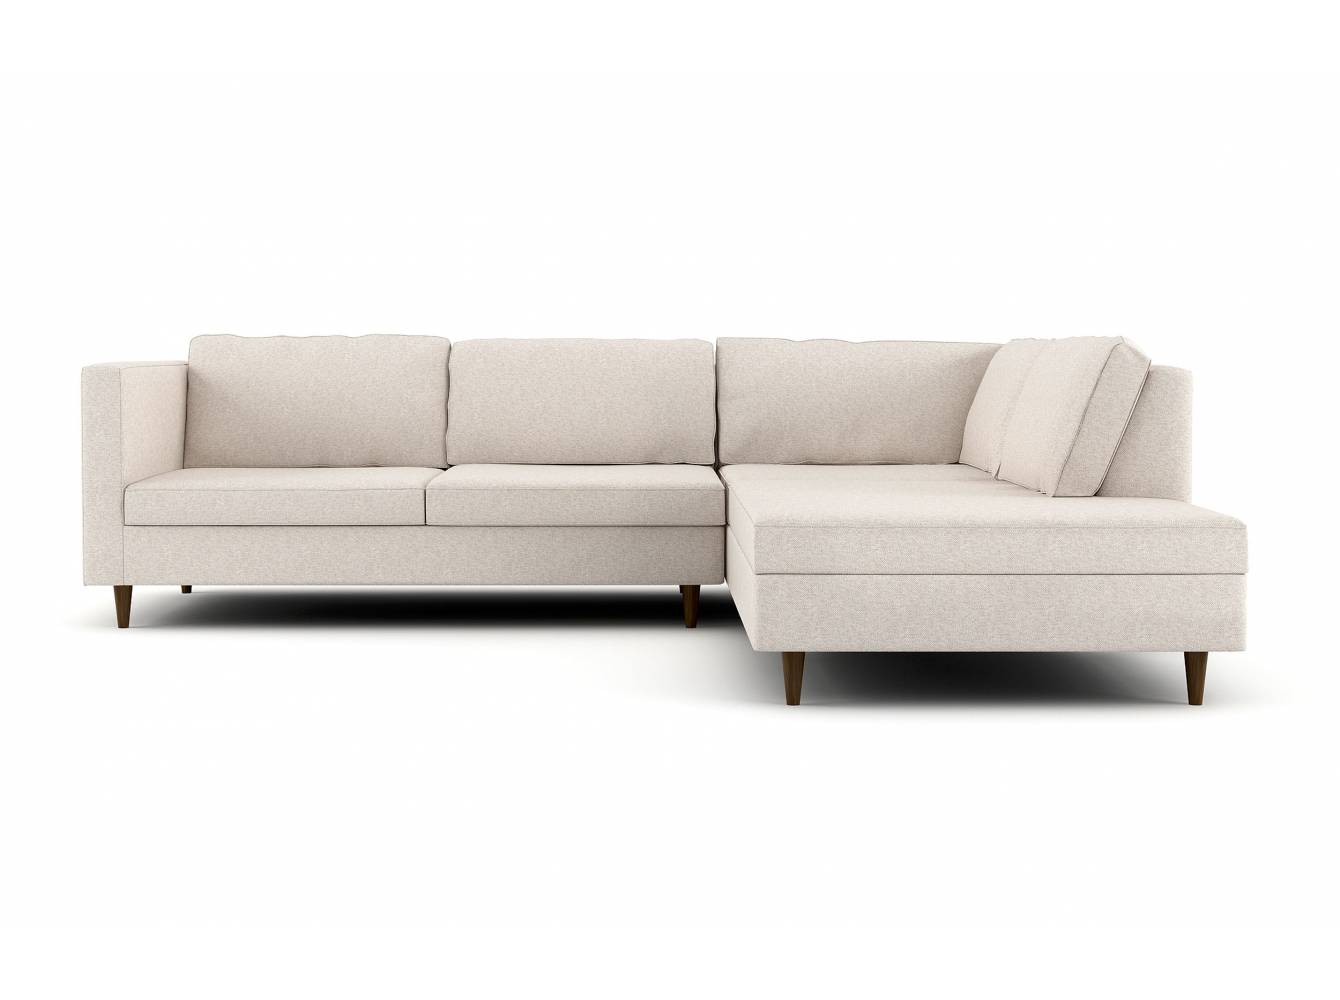 Non Toxic Sofa Guide How Sofa Can Be Toxic Or Non Toxic